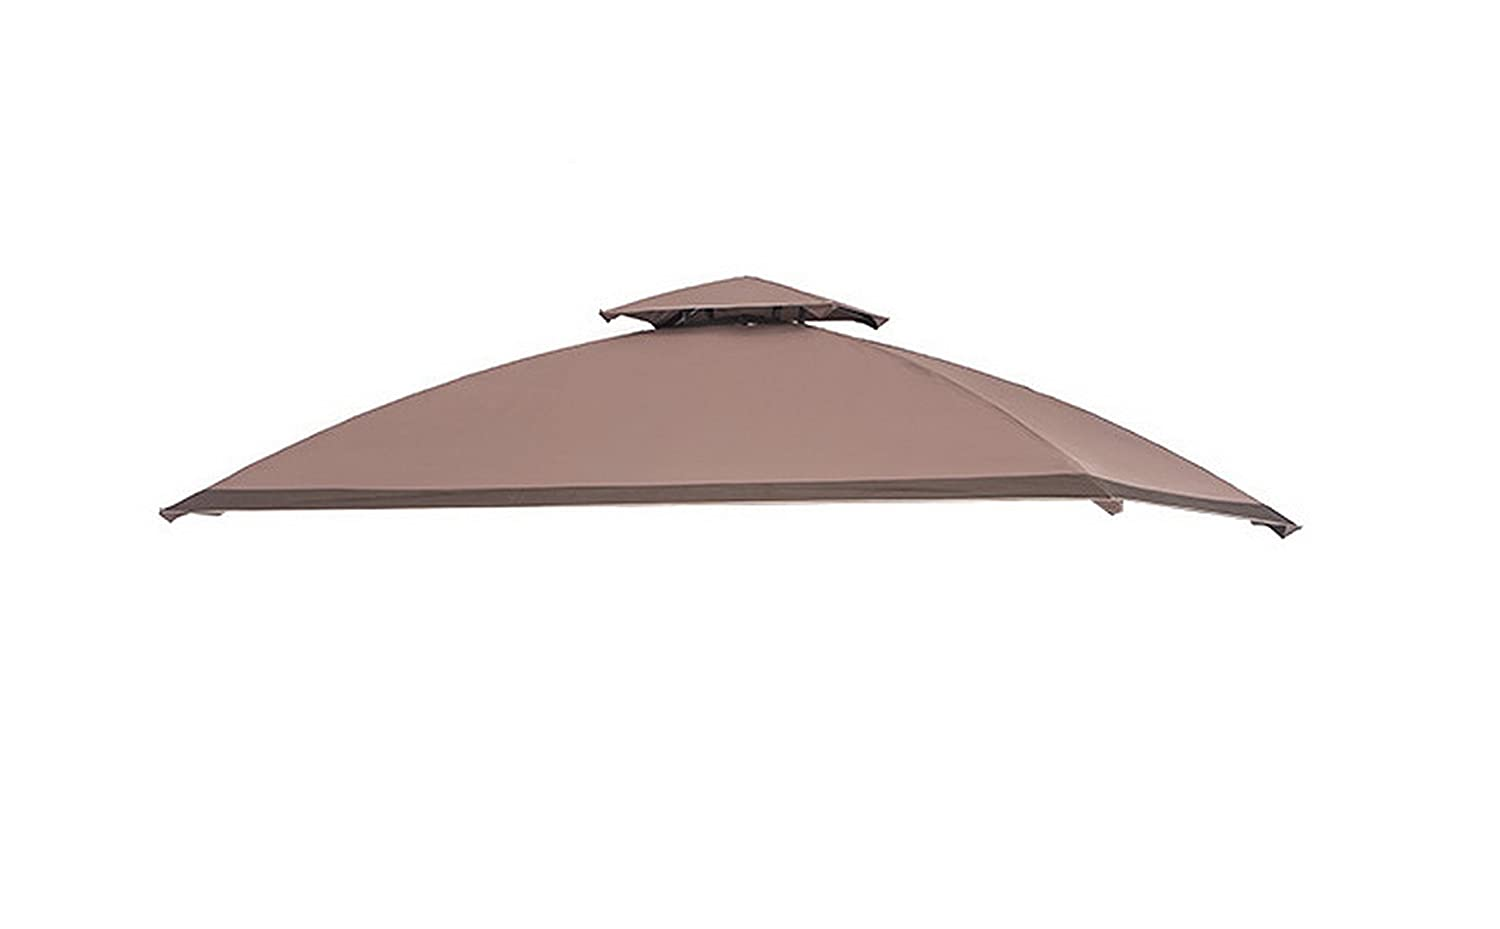 Sunjoy L-GG035PST-PK Replacement Canopy Set for Alton Grill Gazebo, Brown Sunjoy Group